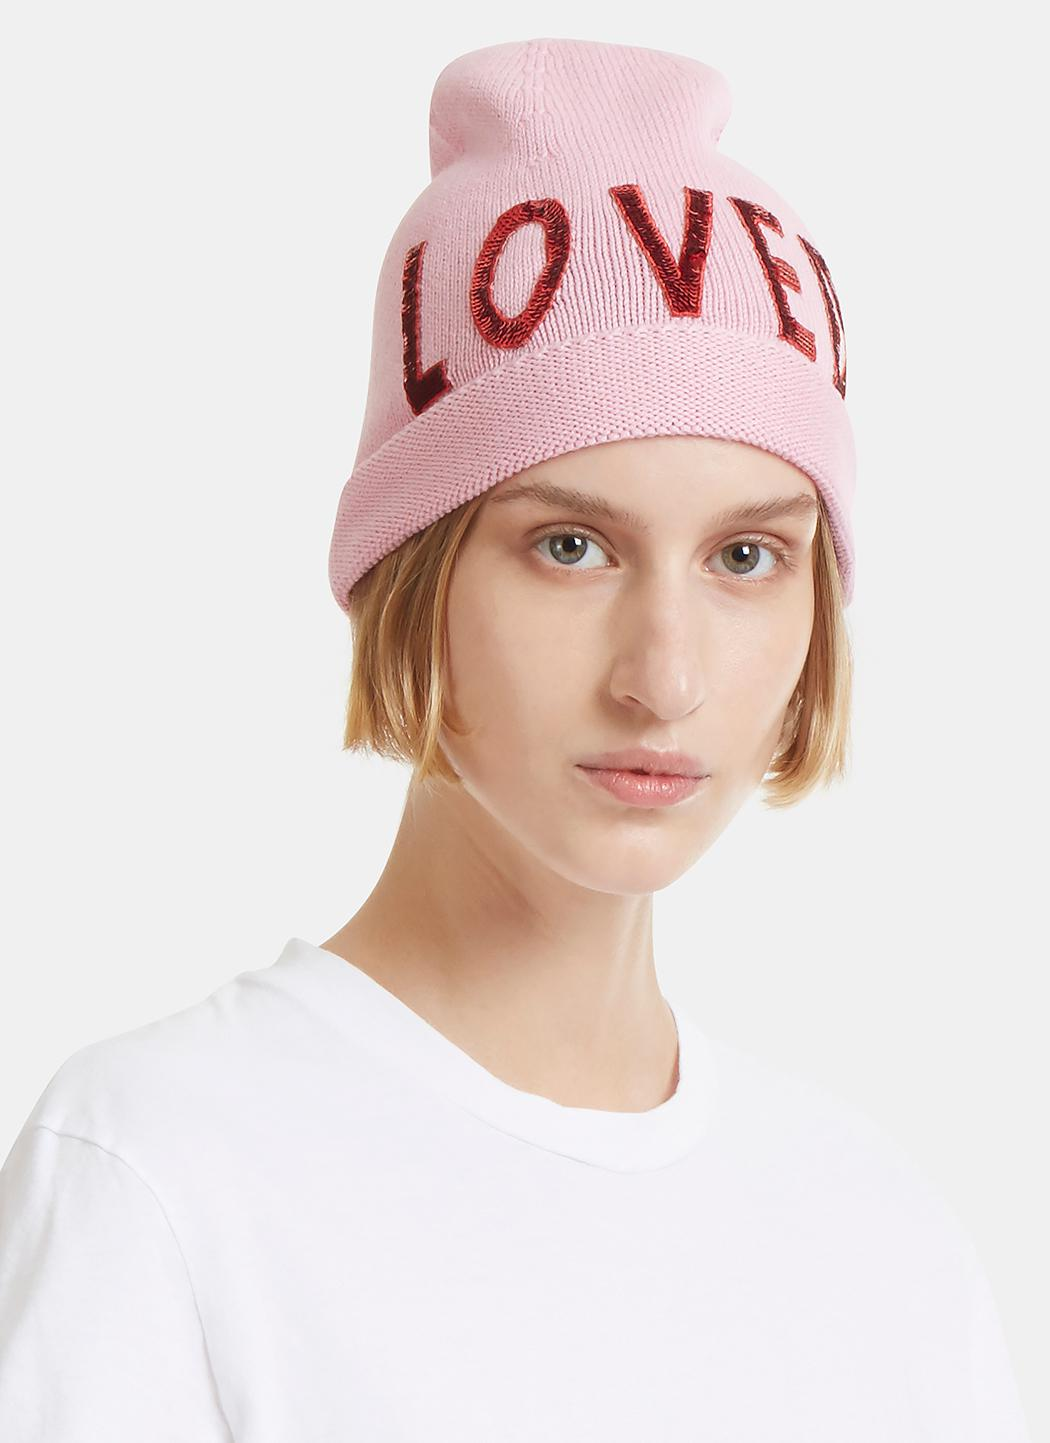 Lyst - Gucci Sequin Embroidered Loved Knit Hat In Pink in Pink e729861c825